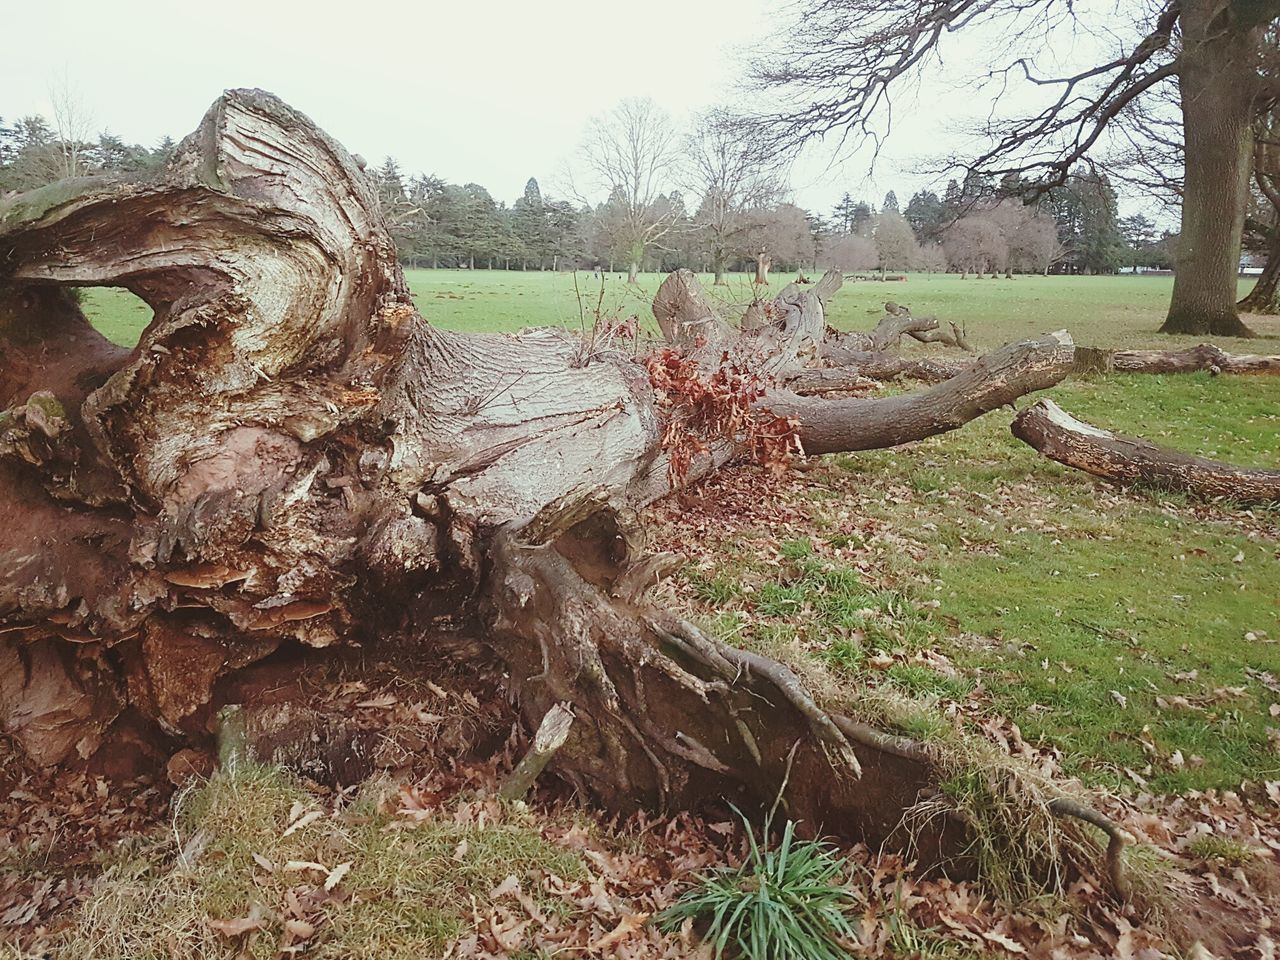 The fall of fall Outdoors Nature Day Tree No People Sky Felled Tree Fallen Tree Decaying Beauty In Nature Dead Plant Tree Trunk Rotting Dead Tree Rotting Wood Cracked Decaying Wood Wood - Material Textured  Tredegar House Newport National Trust 🇬🇧 Landscape Nature Tree